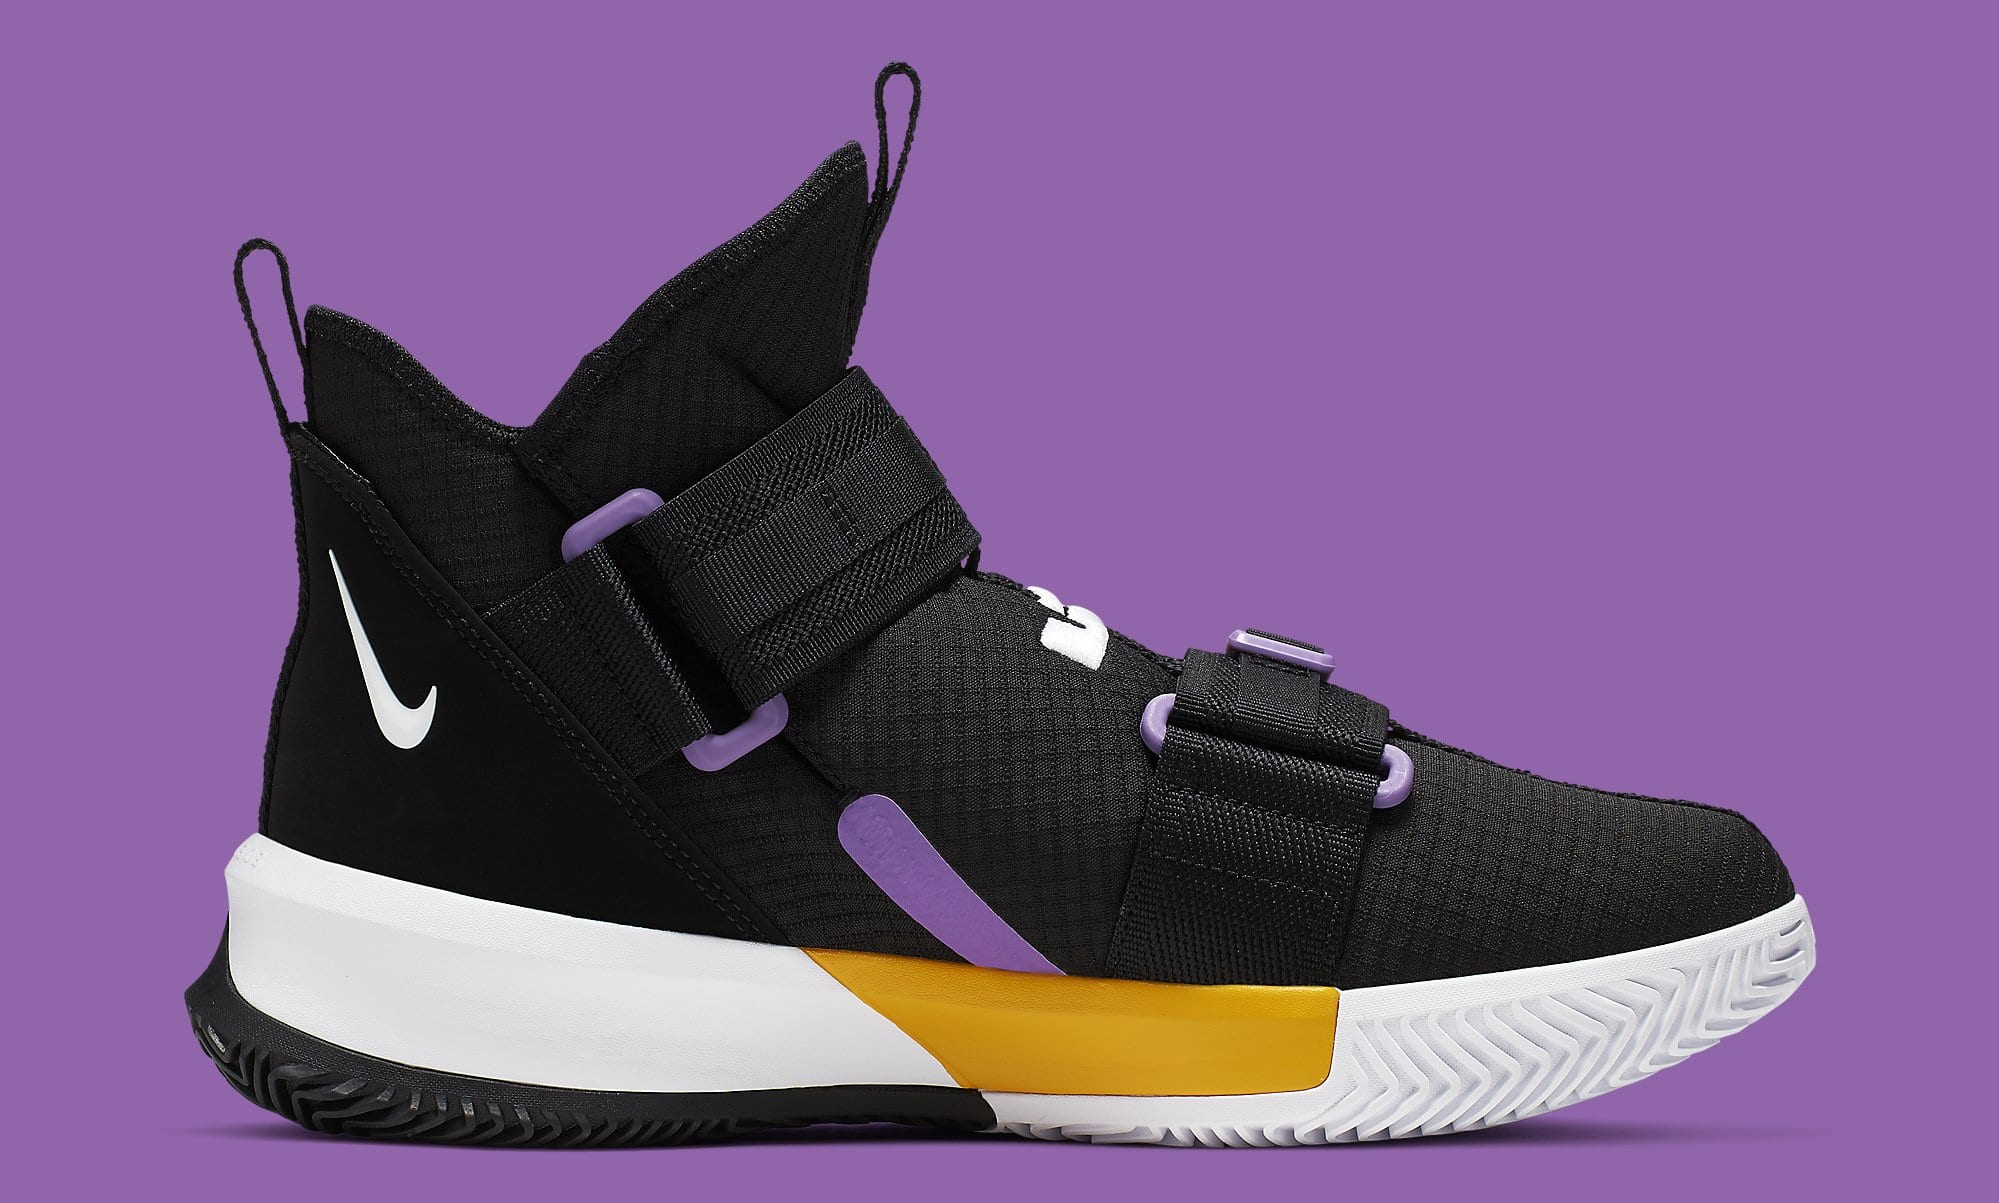 finest selection 32202 9cd43 Nike LeBron Soldier 13 Lakers Release Date AR4228-004 Pair ...